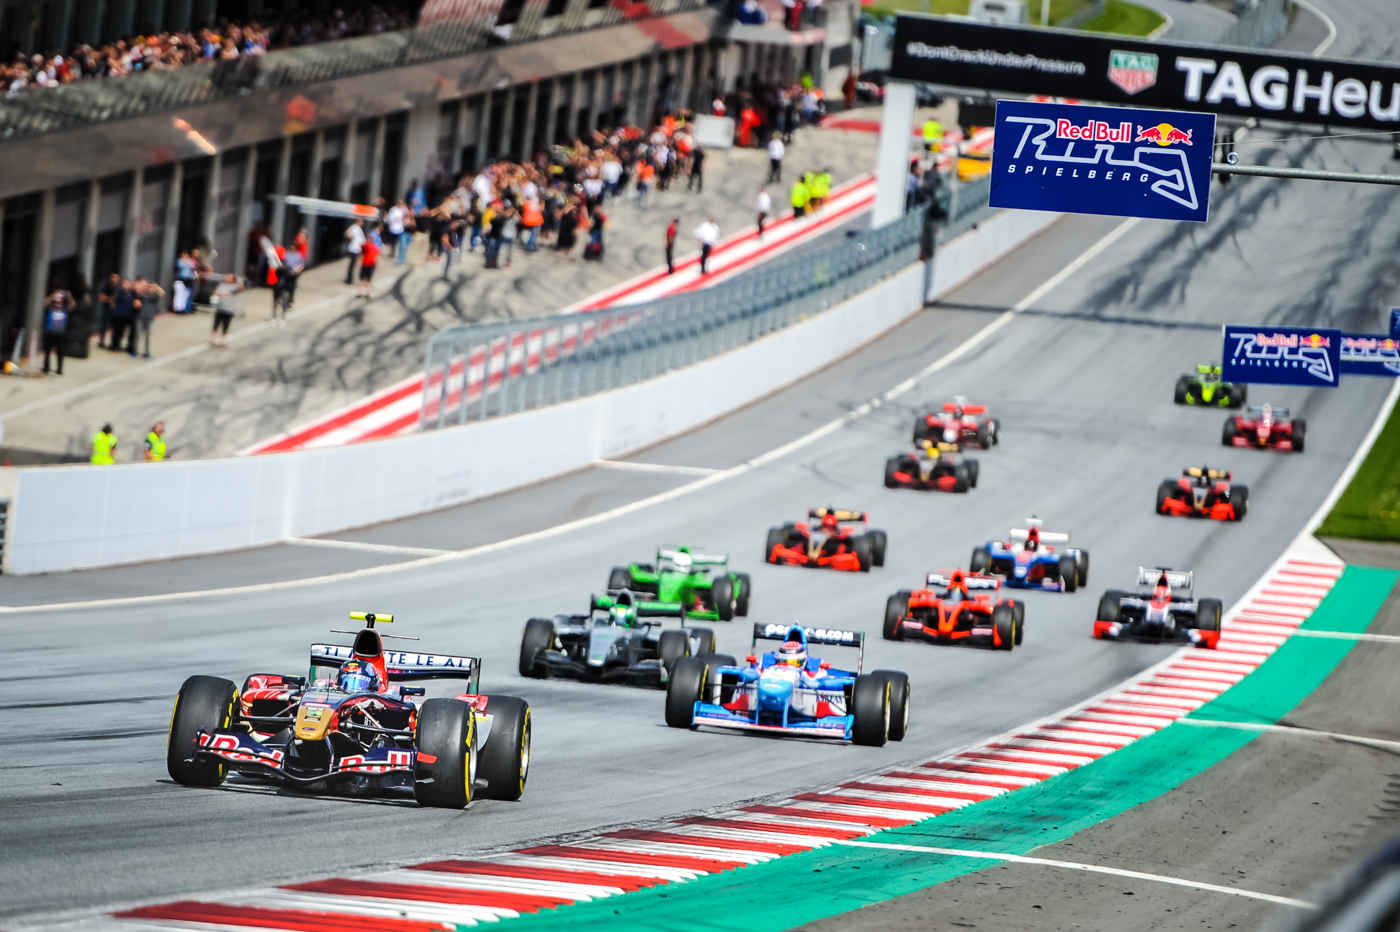 Start for Race 1 in Red Bull Ring